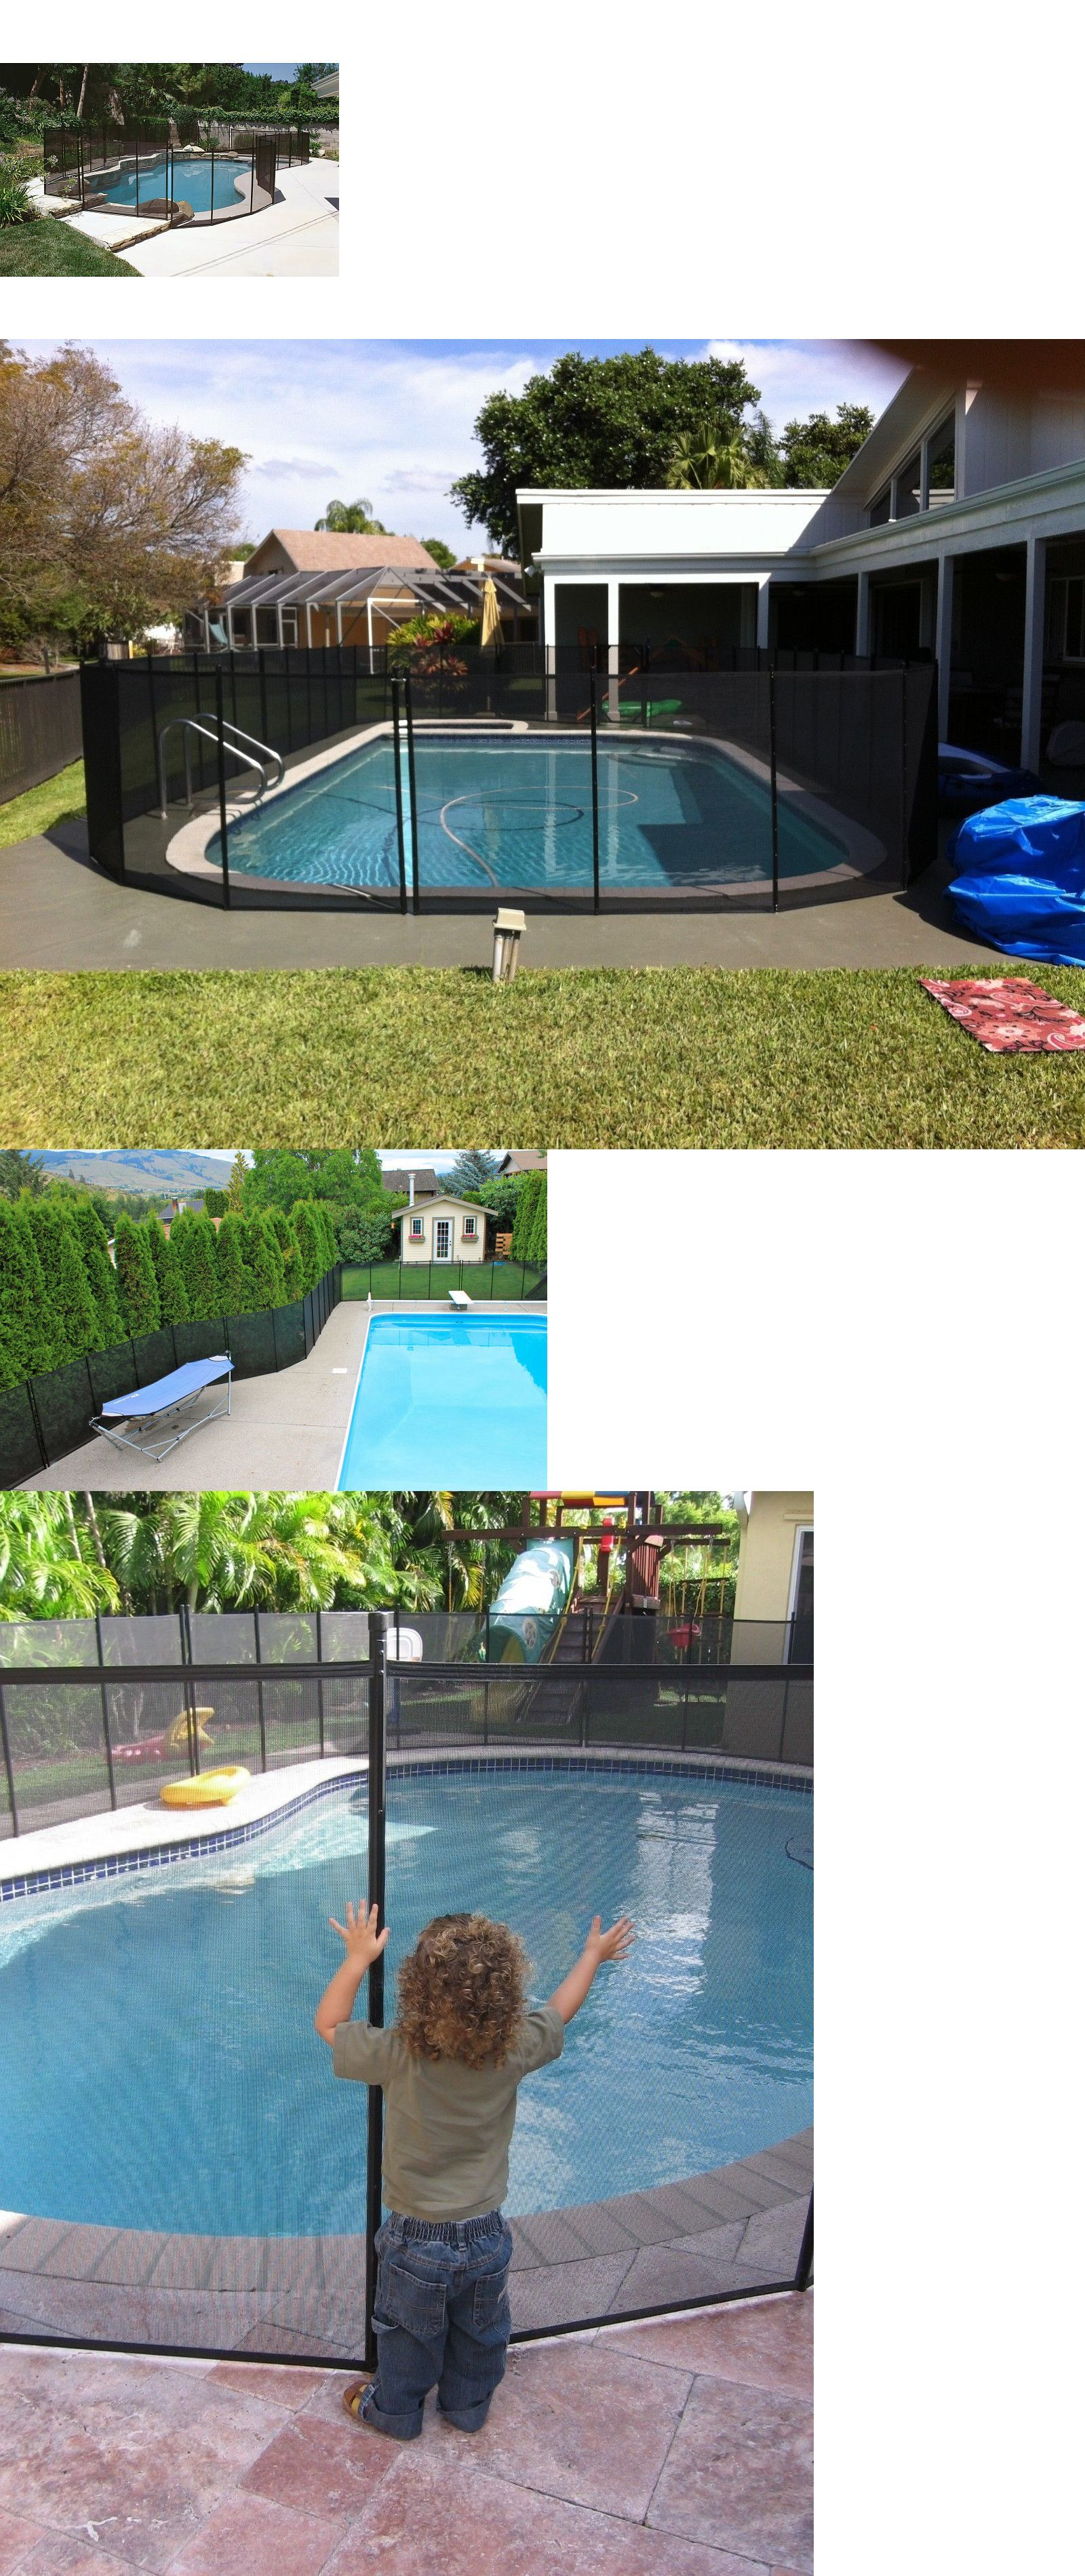 Pool Fences 167851 Water Warden In Ground Pool Safety